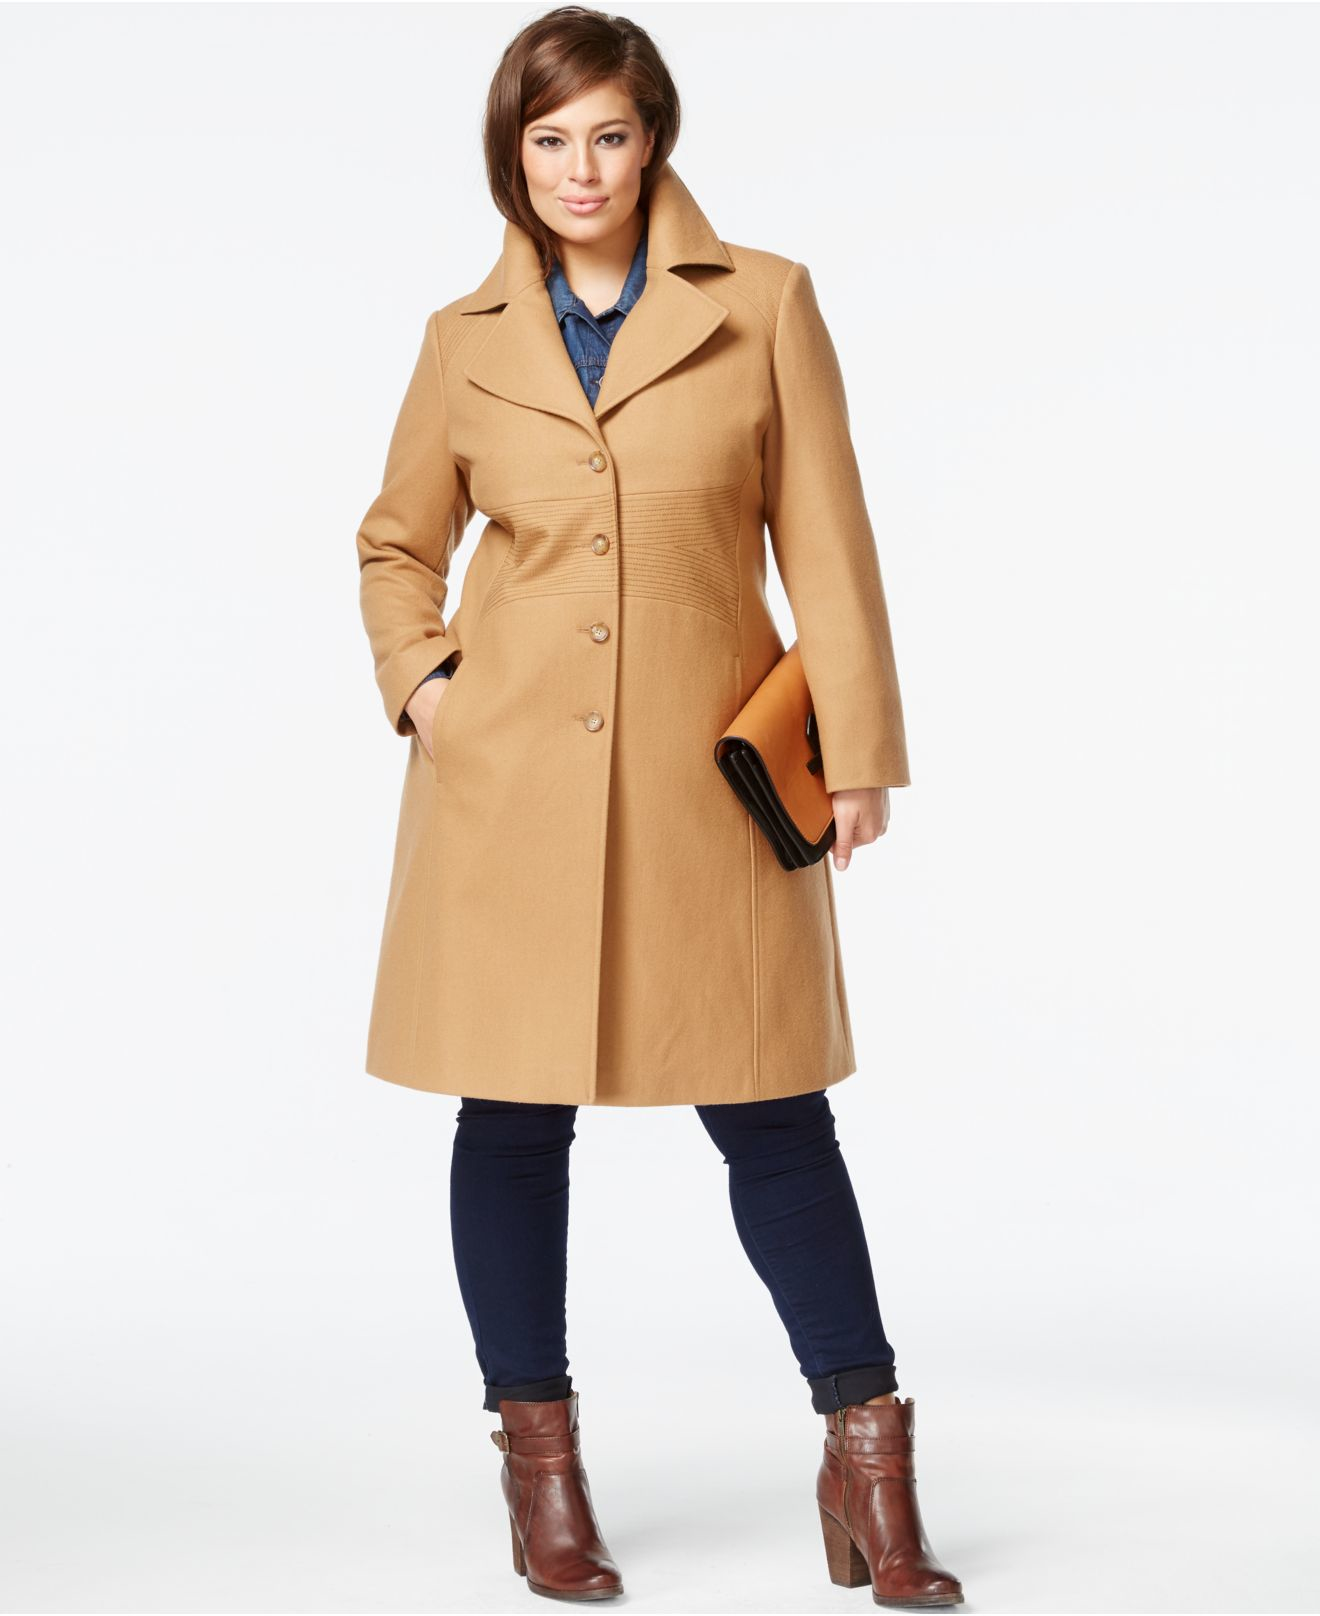 Tommy hilfiger Plus Size Wool-blend Walker Coat in Natural | Lyst